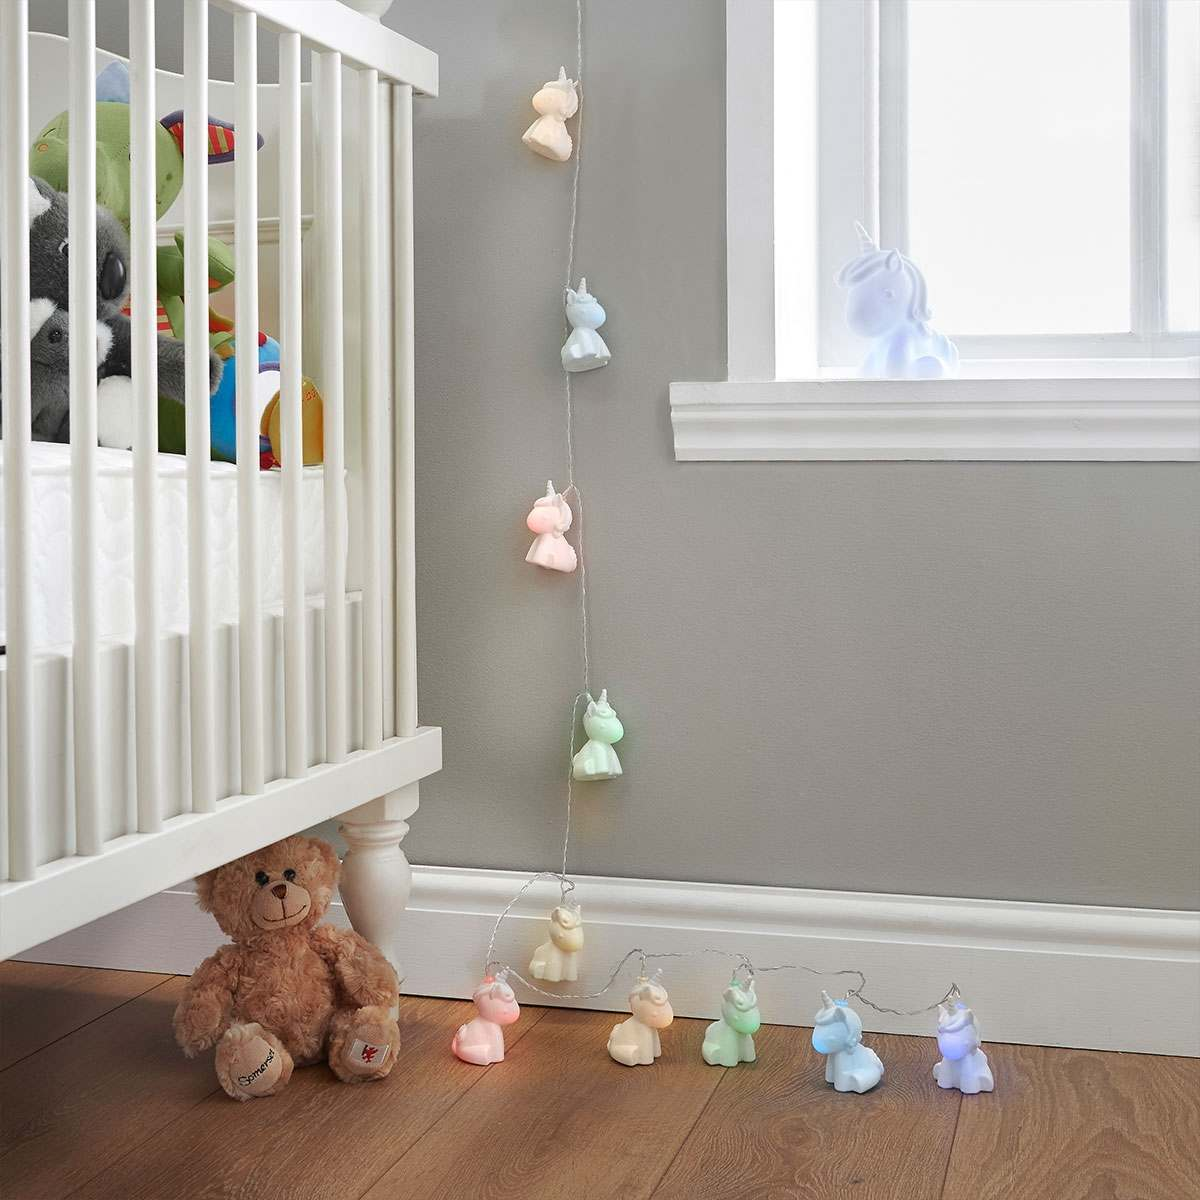 Fairy Lights Kids Room Battery Operated Unicorn Fairy Lights Colour Changing